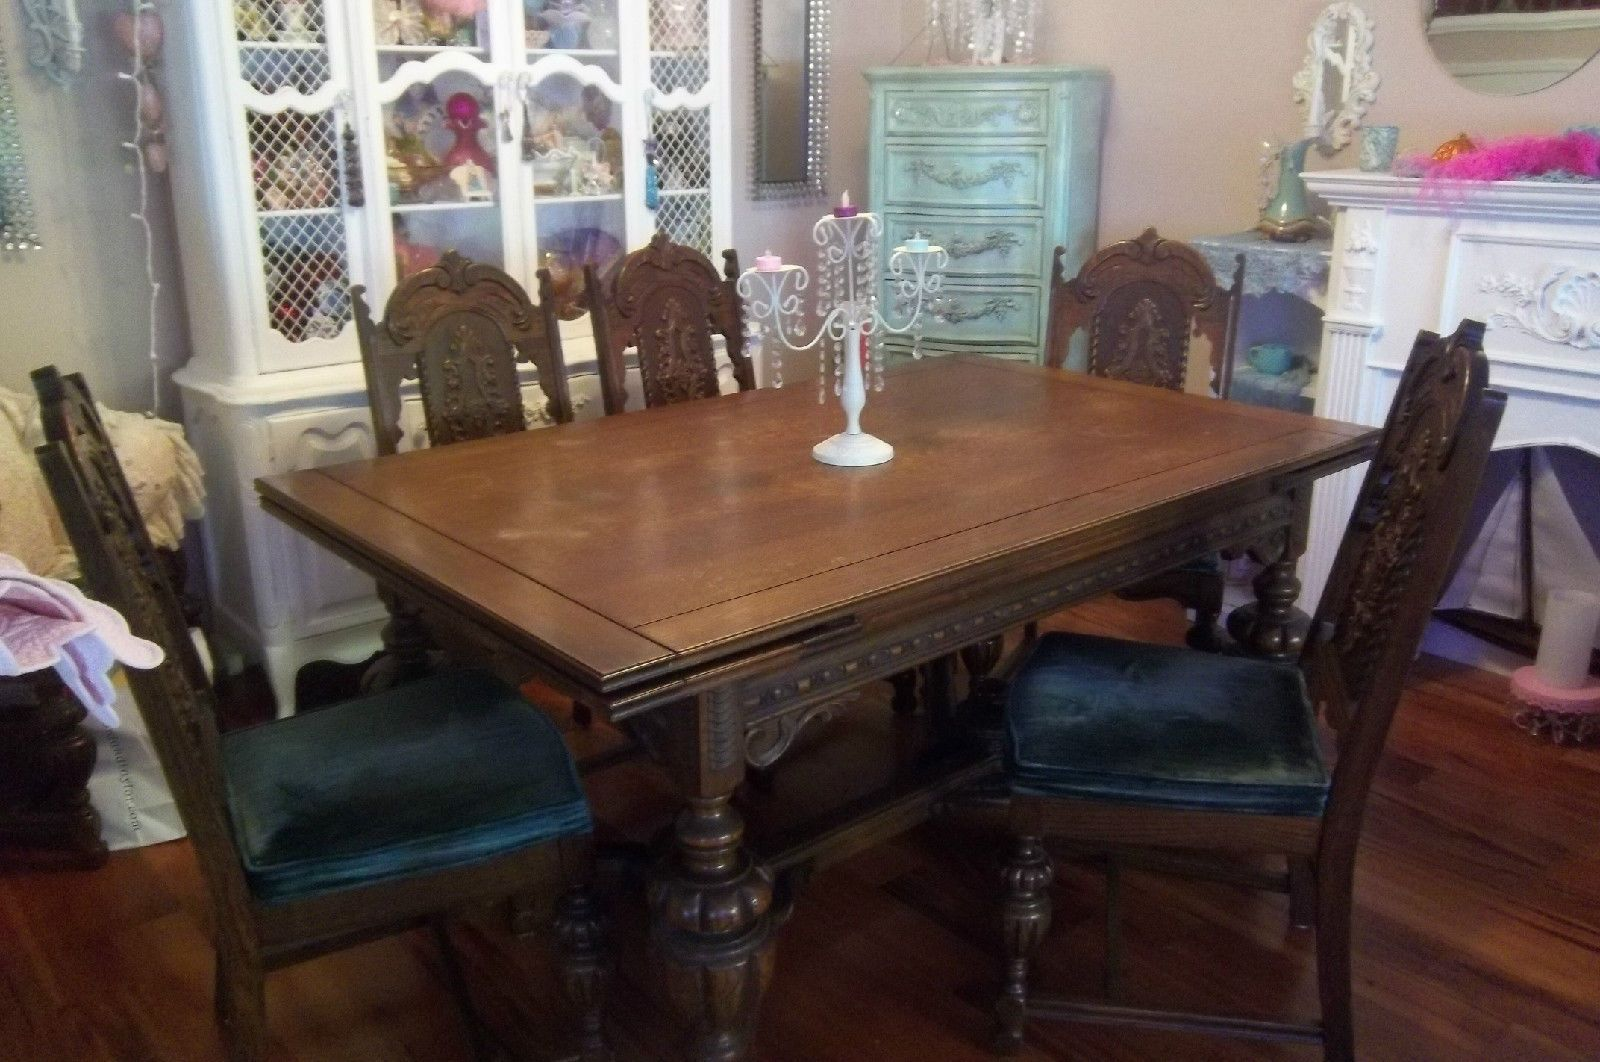 Gothic Dining Room Table Set With 6 Chairs And Server Buffet | EBay